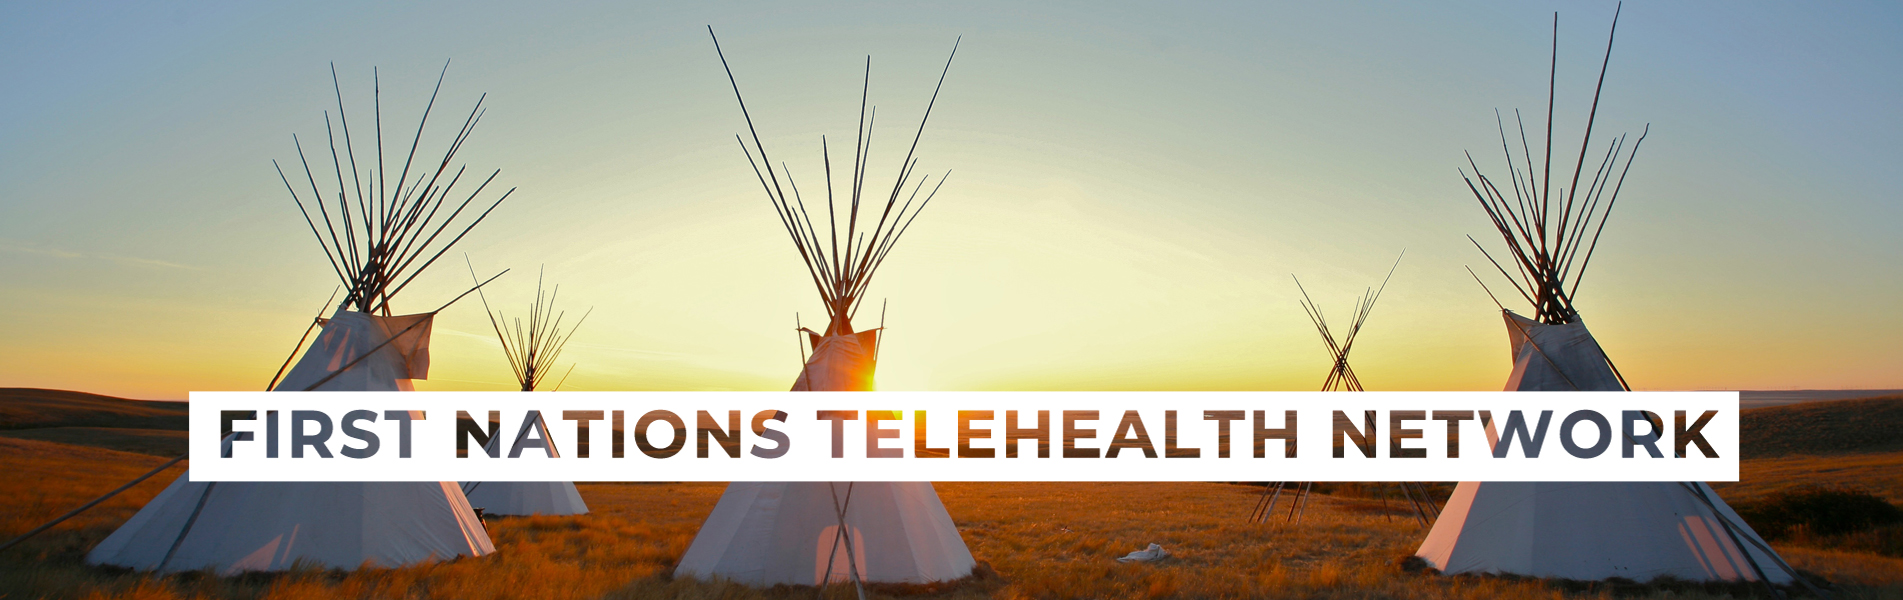 First Nations Telehealth Portal